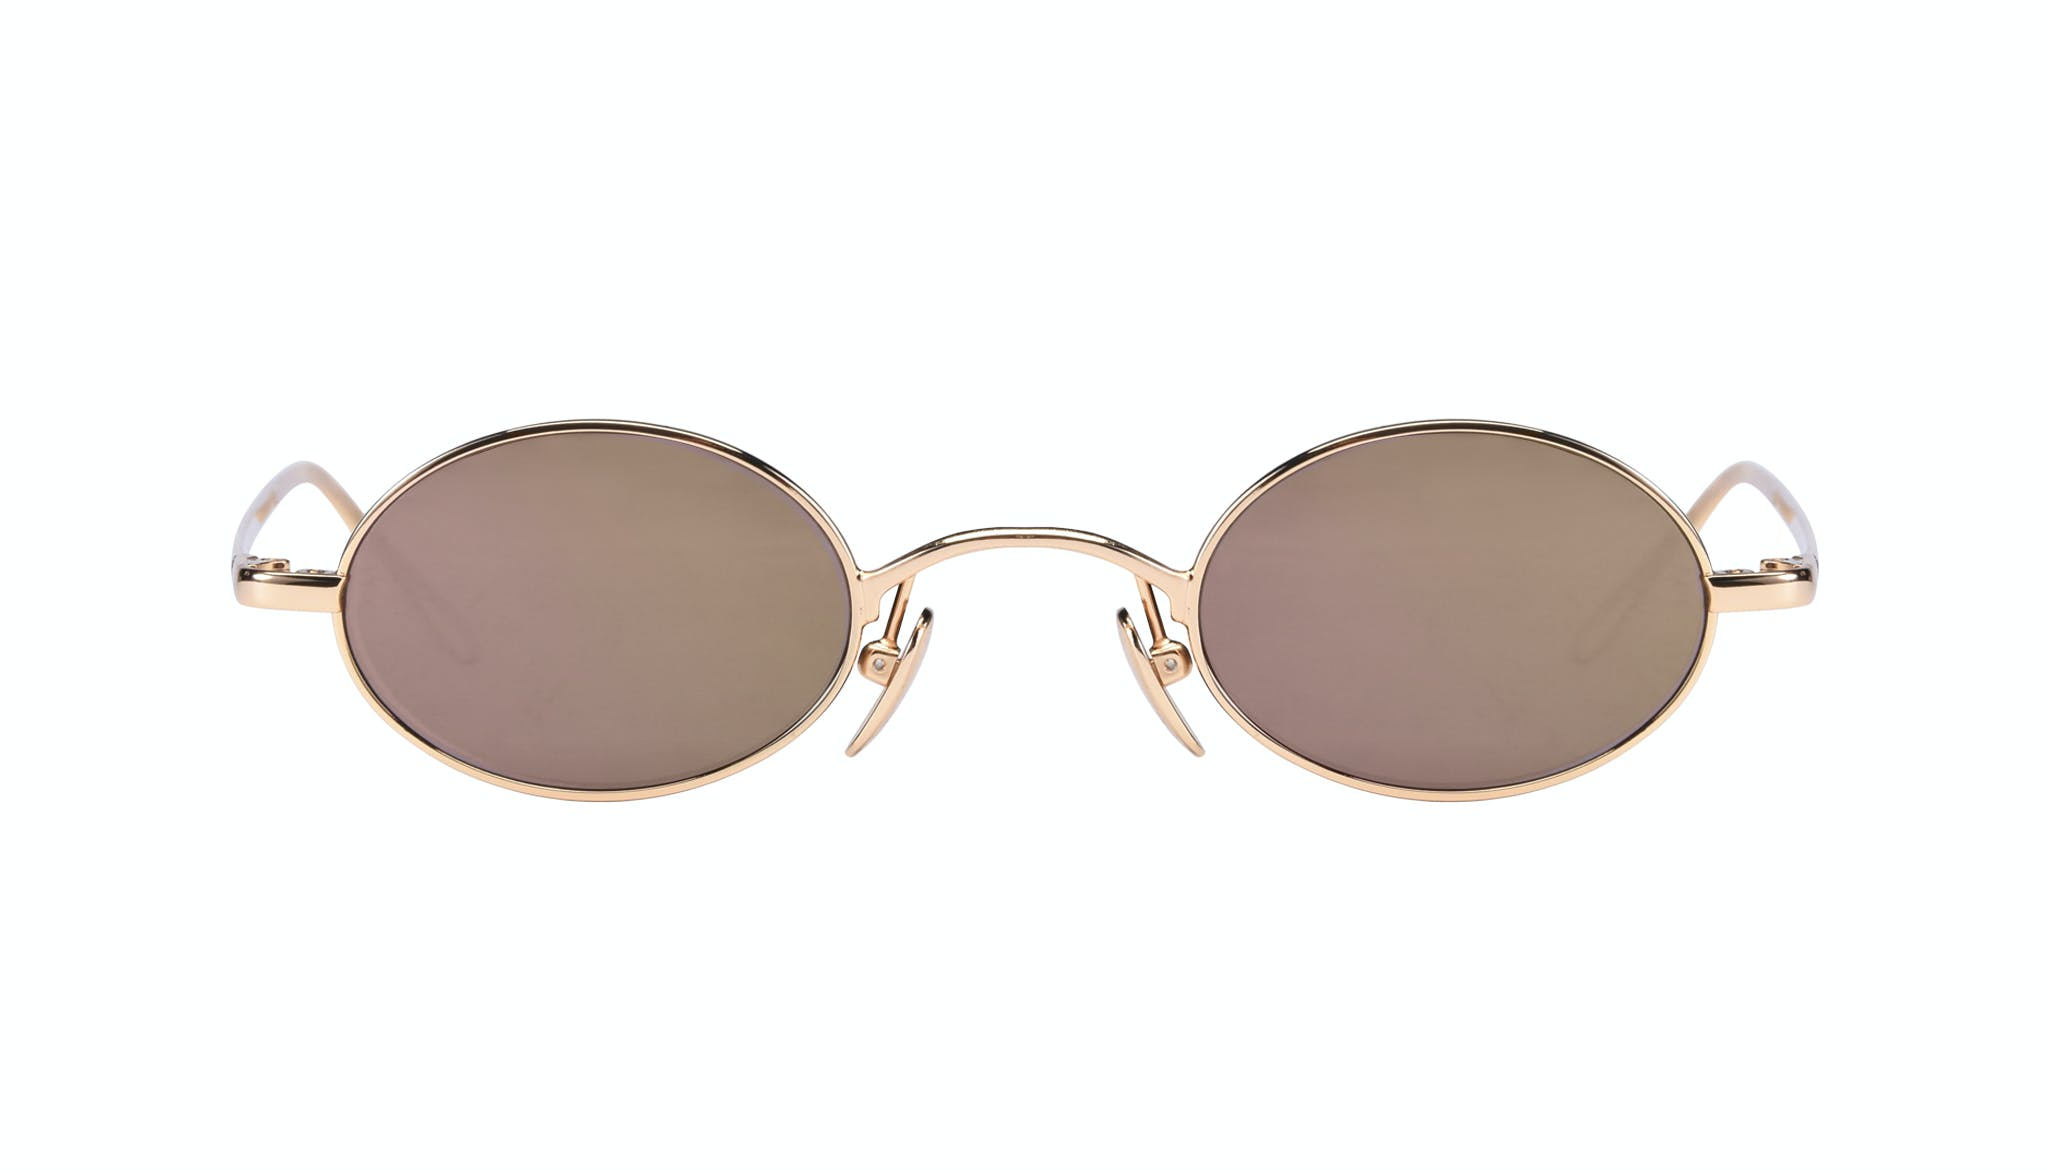 Affordable Fashion Glasses Round Sunglasses Women Stellar Gold Front